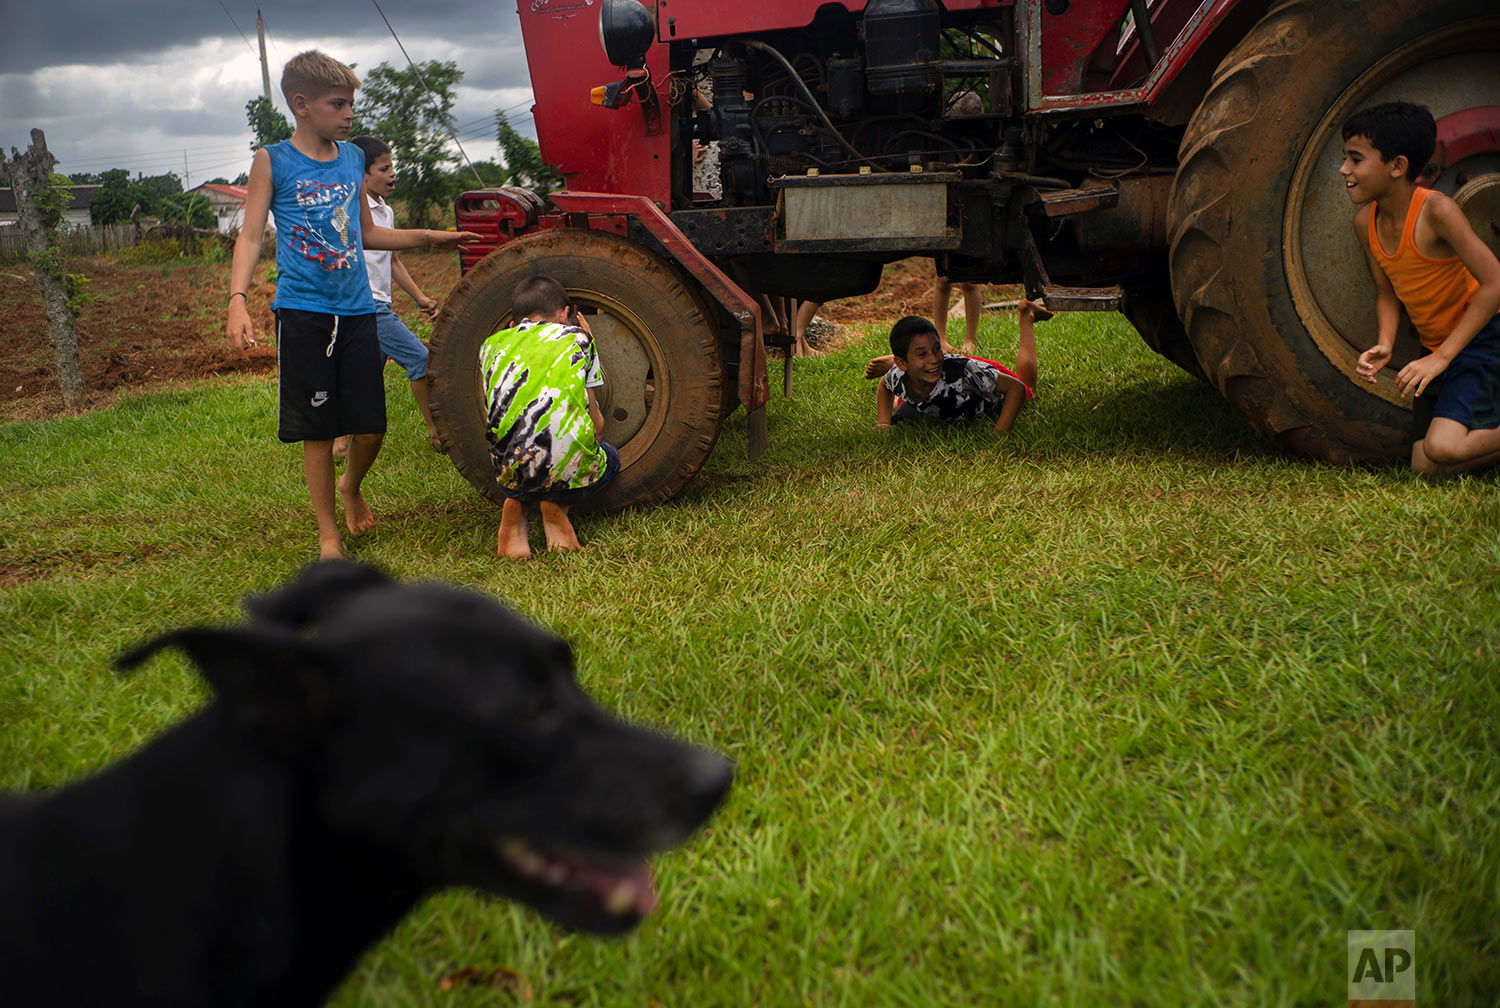 In this Aug. 24, 2019 photo, children play around the tractor that will pull a trailer converted into a swimming pool in El Infernal neighborhood in San Andres in the province of Pinar del Río, Cuba.  (AP Photo/Ramon Espinosa)